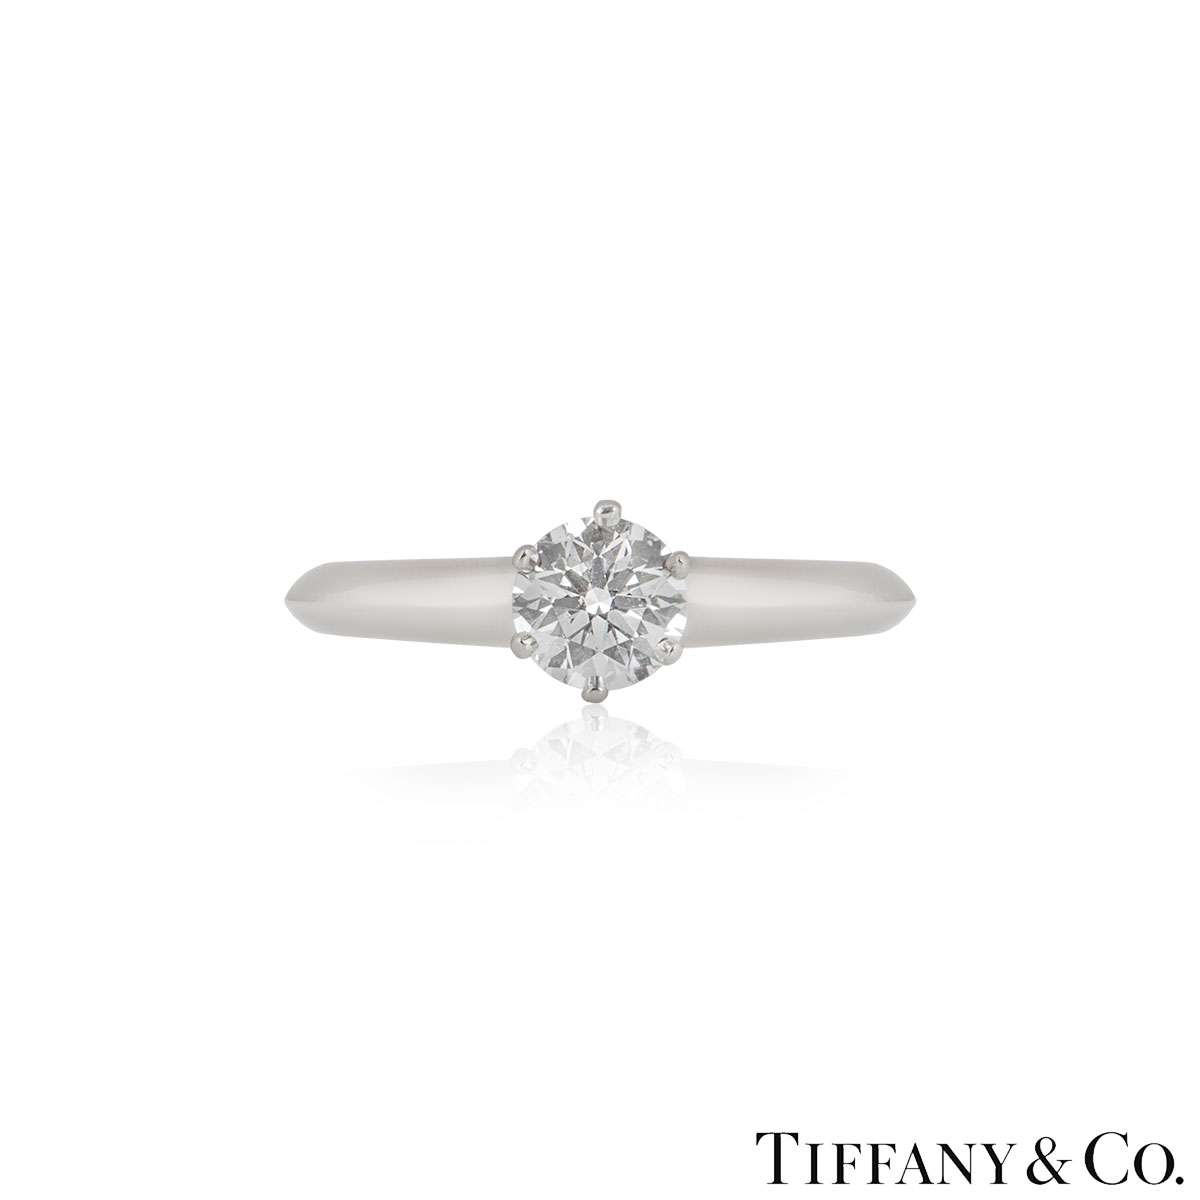 Tiffany & Co. Round Brilliant Cut Diamond Ring 0.58ct F/VS1